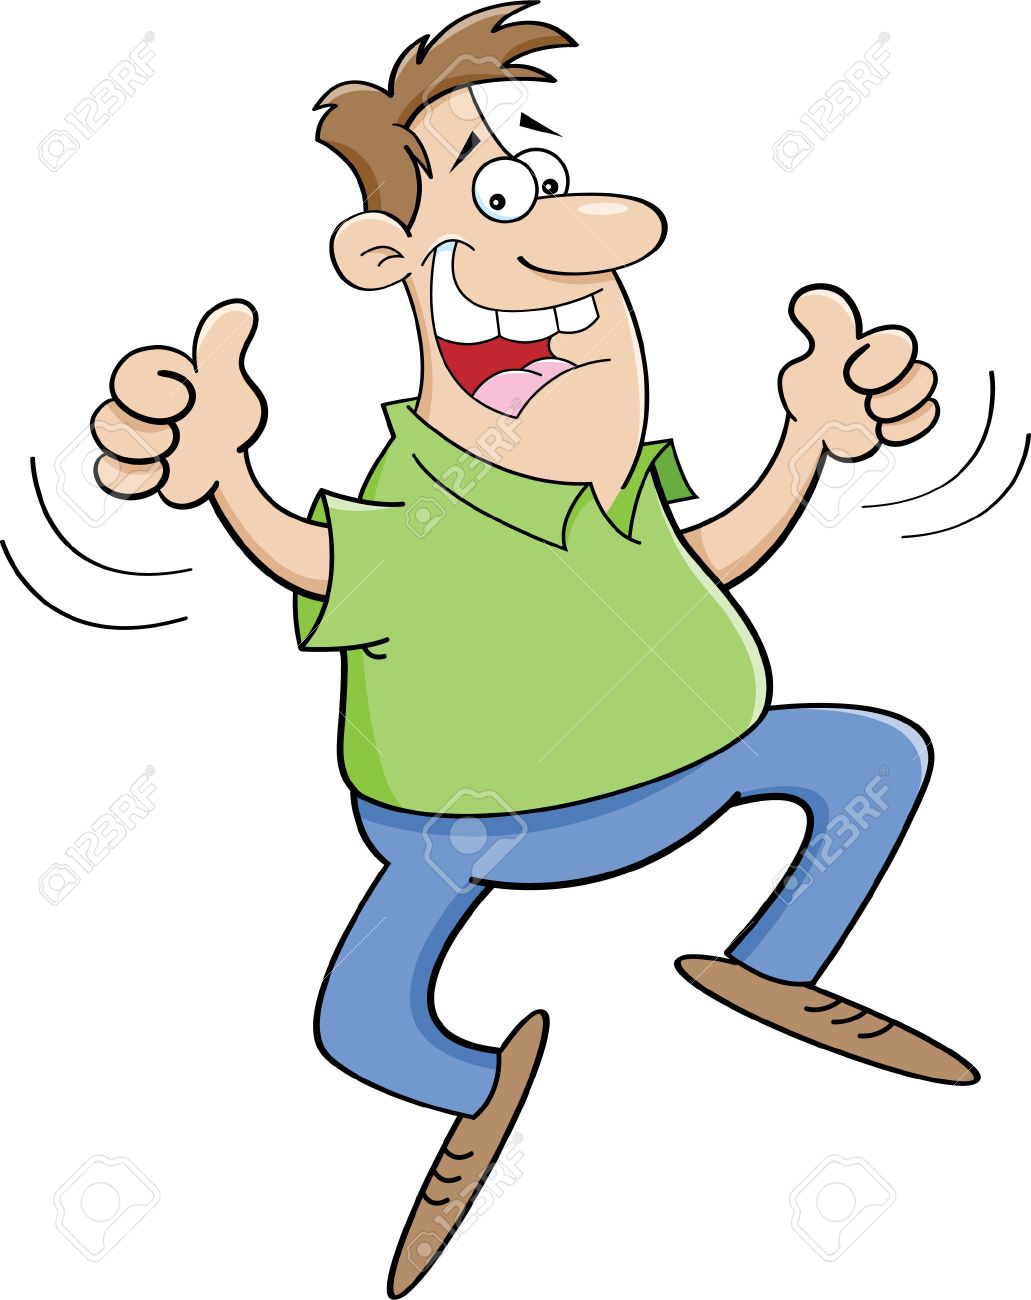 Cartoon Illustration Of A Man Jumping With Thumbs Up Royalty Free.